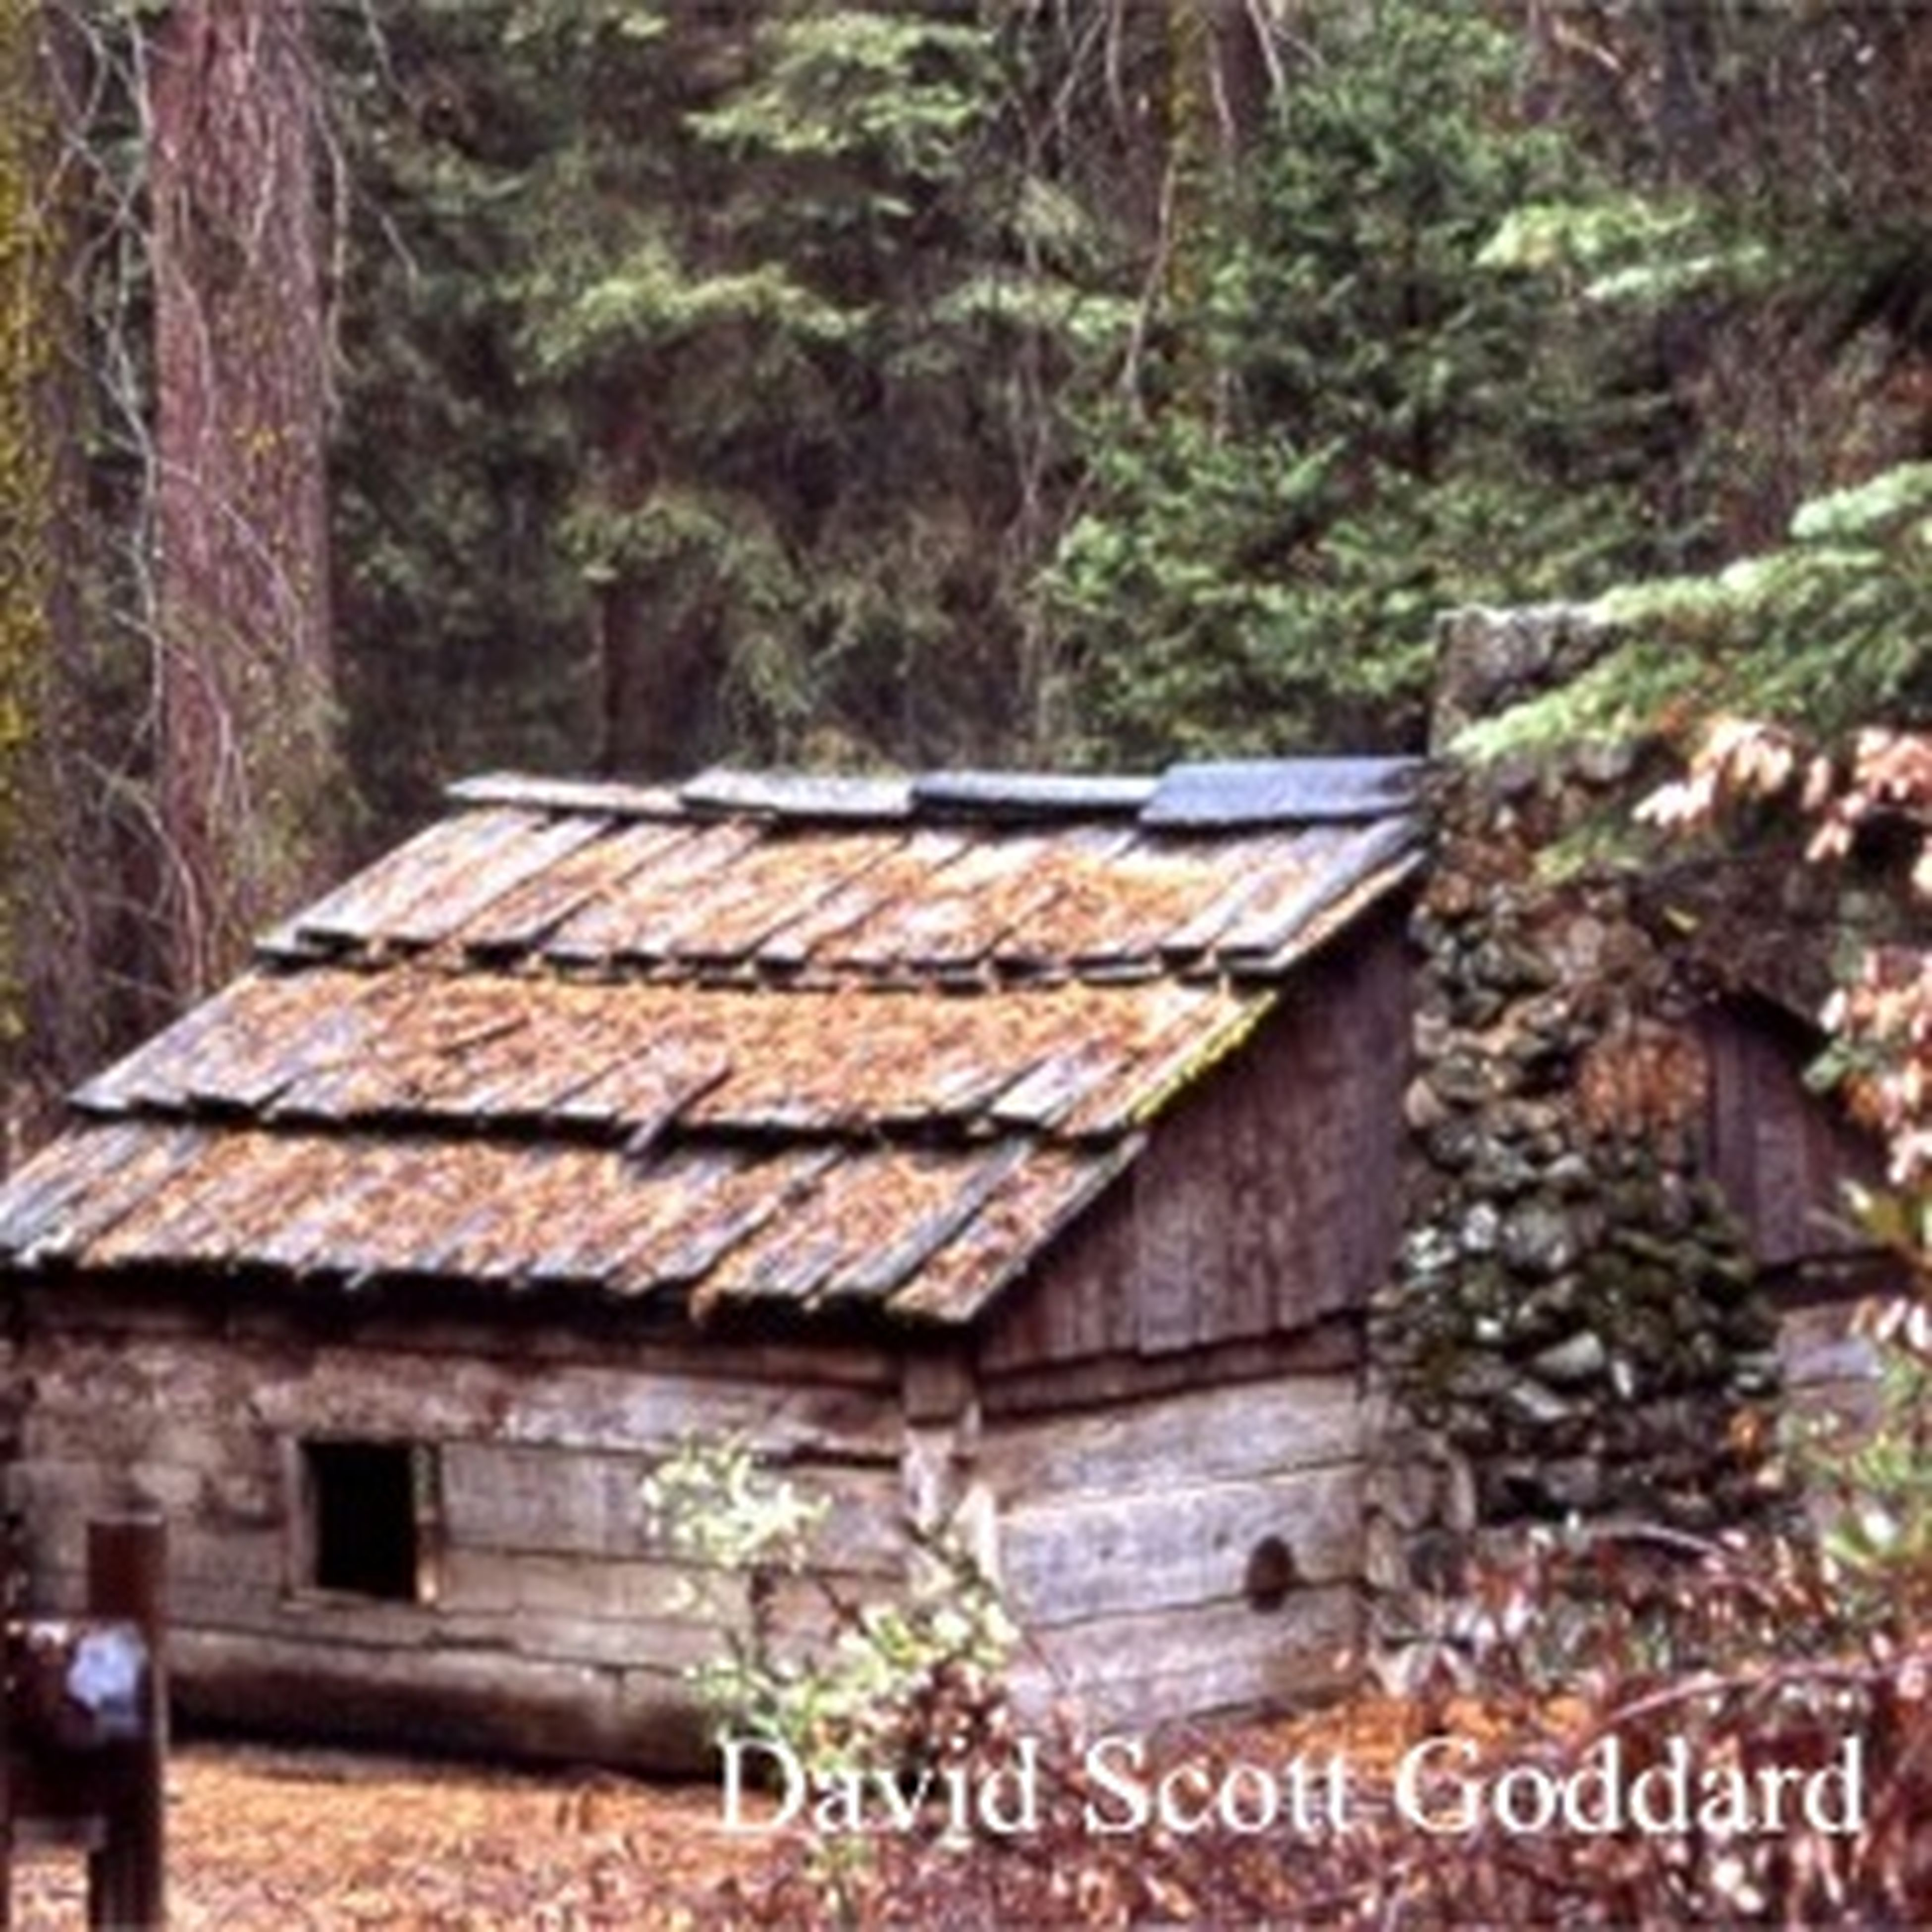 tree, built structure, architecture, building exterior, house, roof, wood - material, old, day, focus on foreground, selective focus, outdoors, weathered, forest, abandoned, growth, no people, nature, run-down, plant